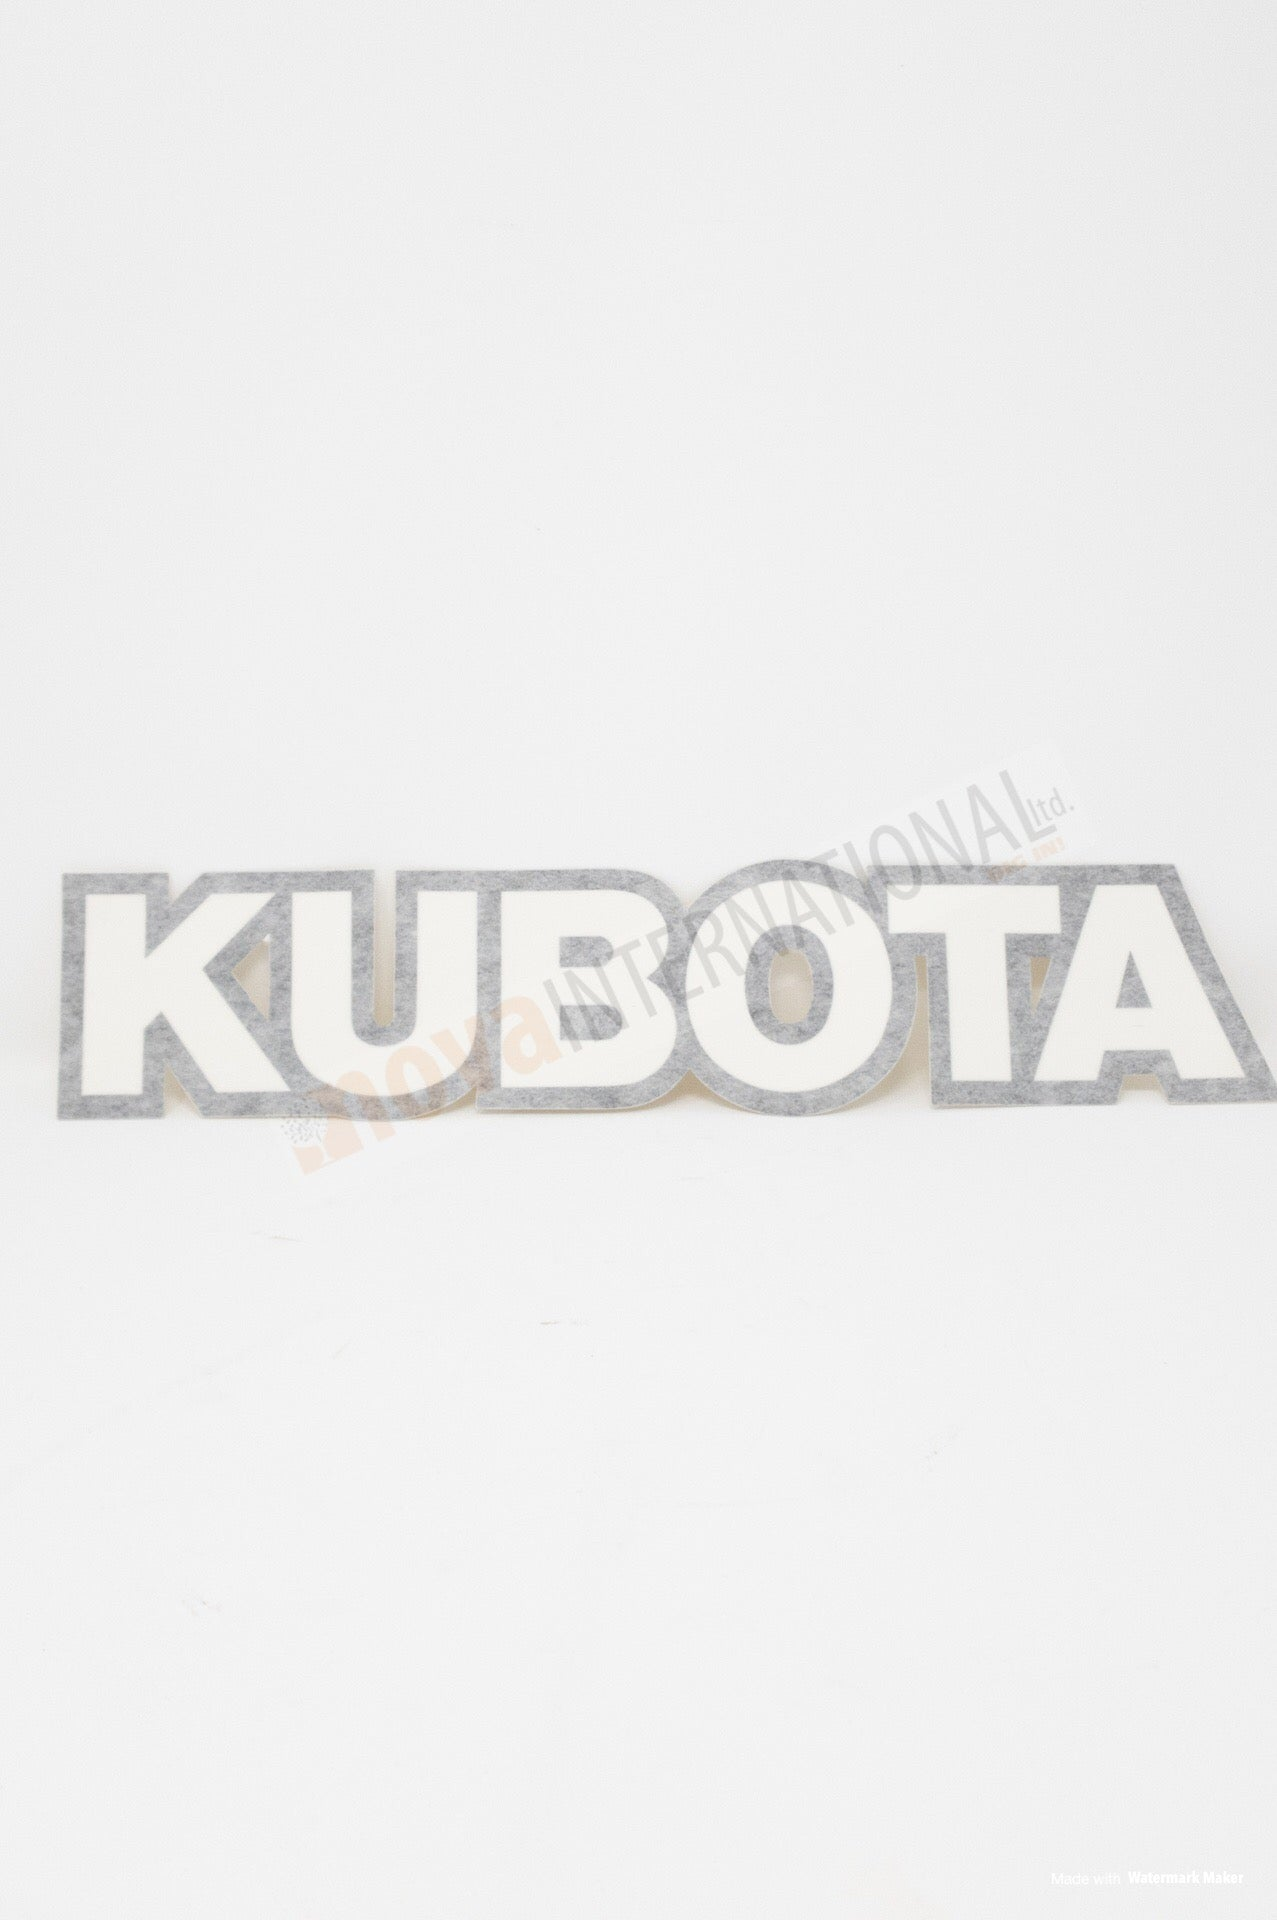 Kubota Decal - Black Trim 7558058450